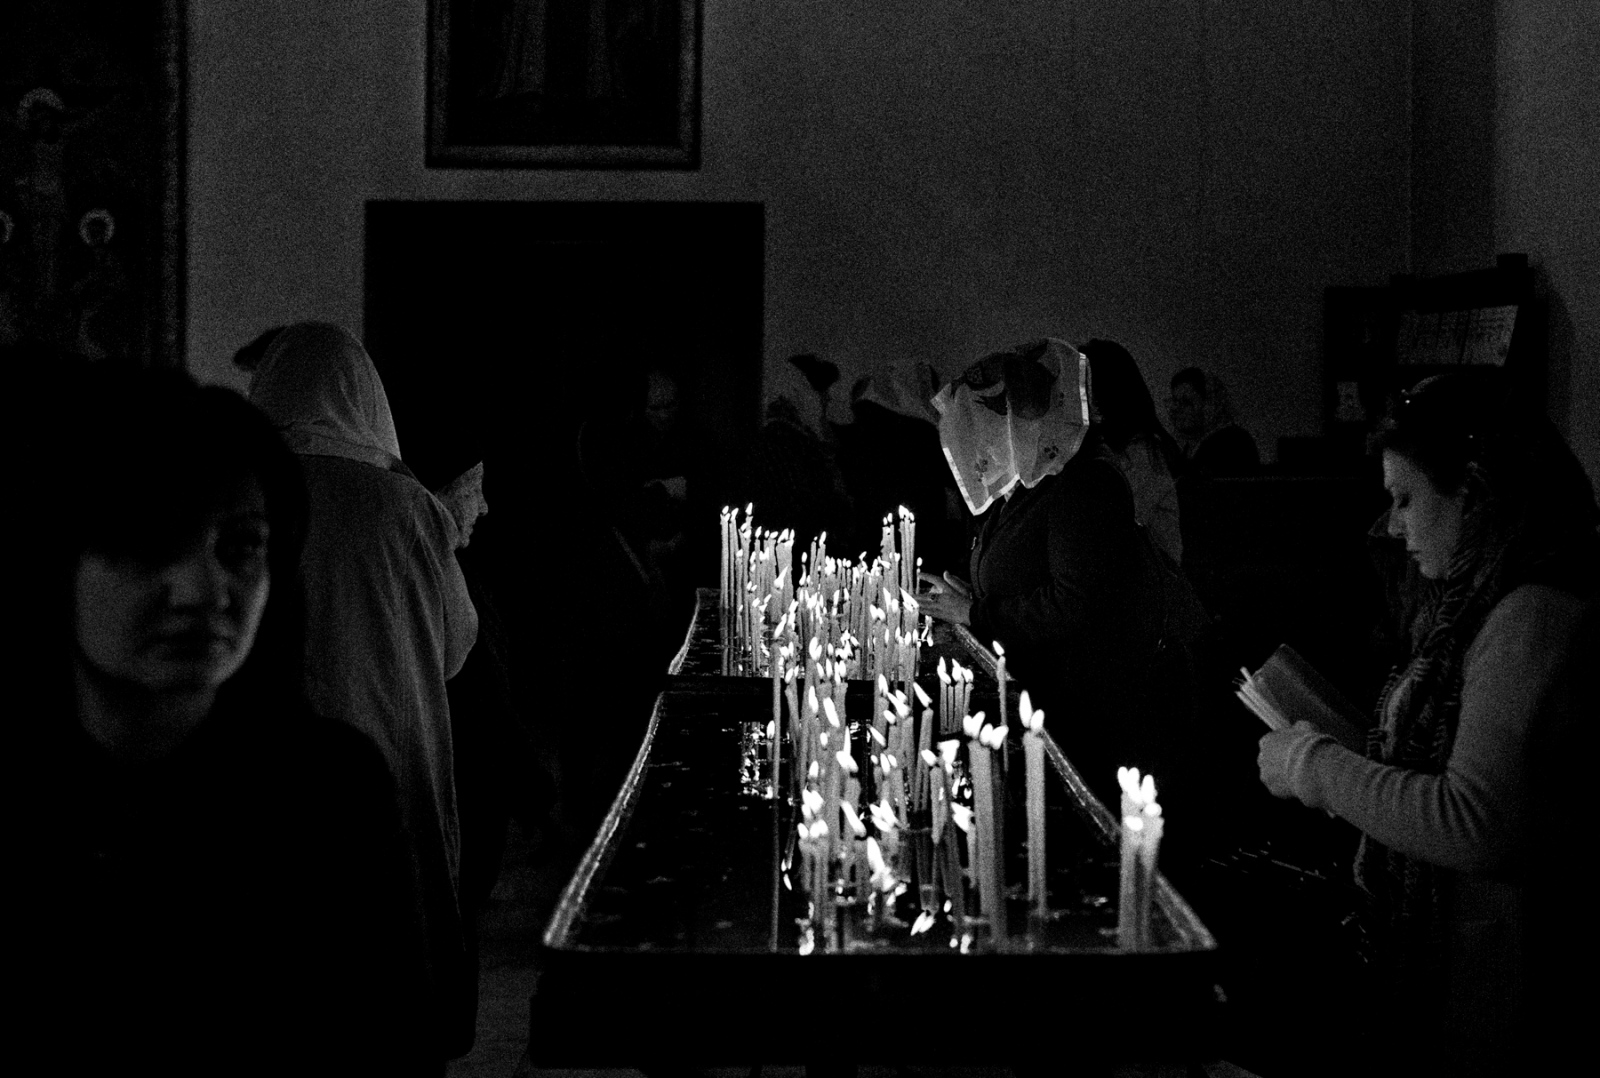 Worshipers pray and light candles at the Etchmiadzin Cathedral in Vagharshapat, Armenia. The original church was built between 301 and 303. Following the invasion of the Persian Empire, the Church was heavily damaged and so it was rebuilt in 483. The Cathedral is the main shrine of religious Christian Armenians worldwide and was listed as a World Heritage Site by UNESCO in 2000.